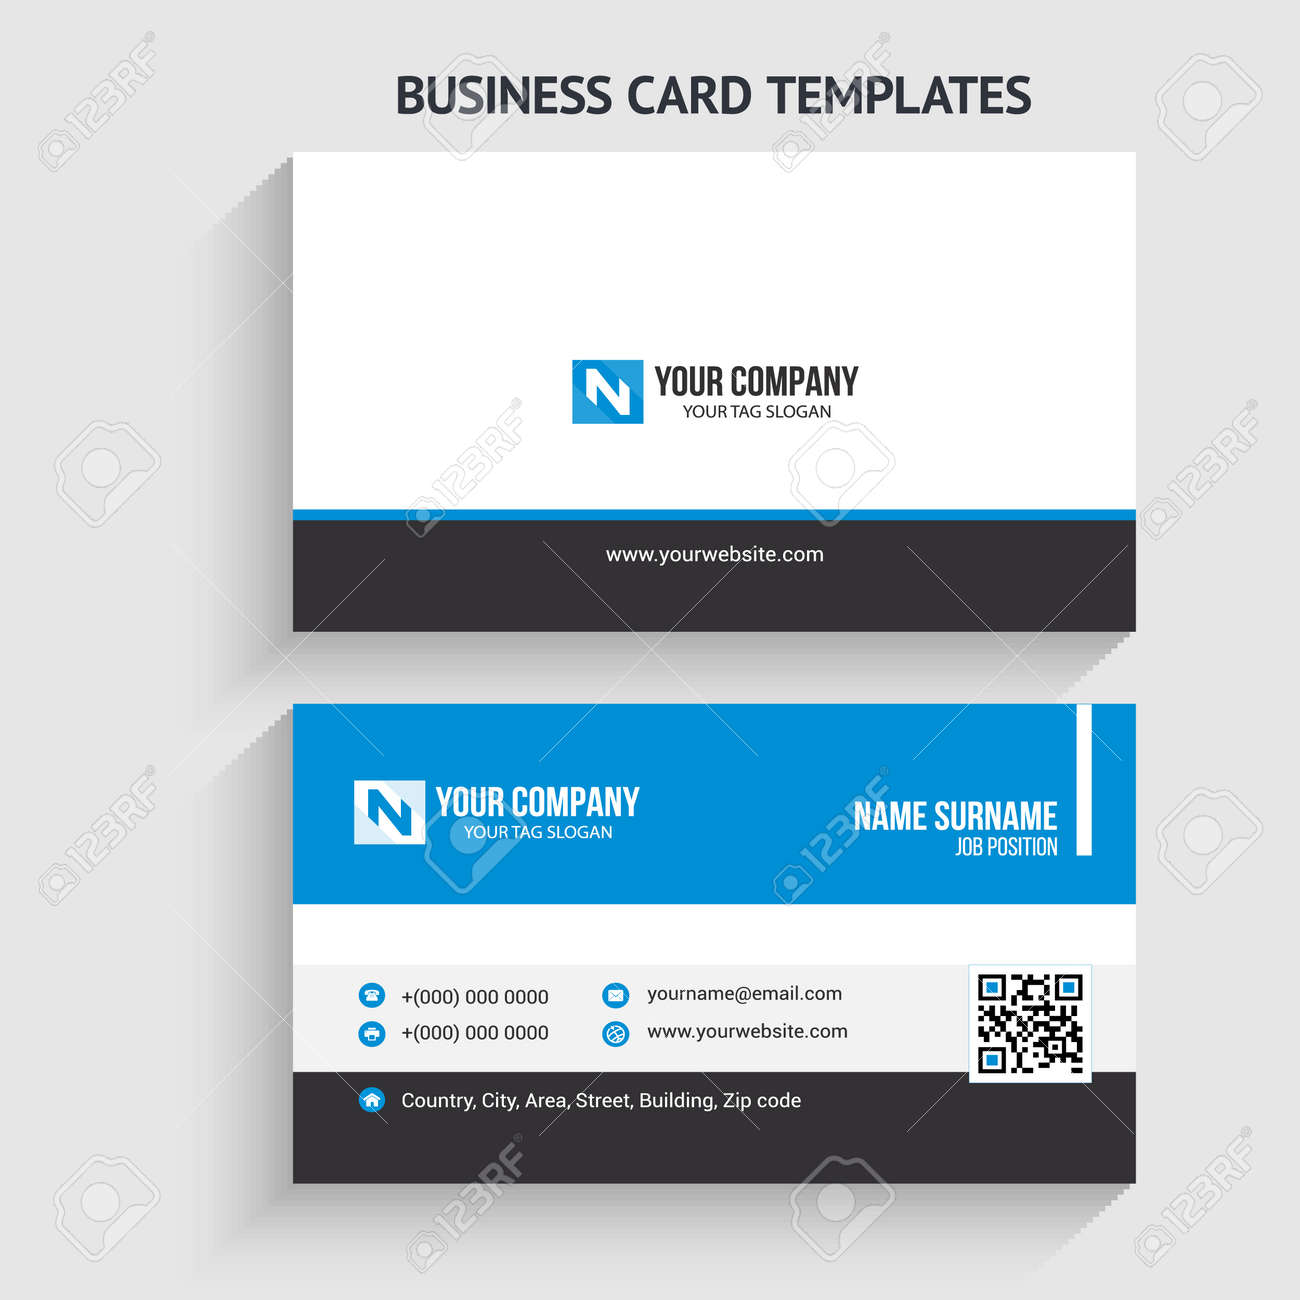 Creative and Modern Business Card Template. Stationery Design, Flat Design, Print Template, Vector illustration - 149444368